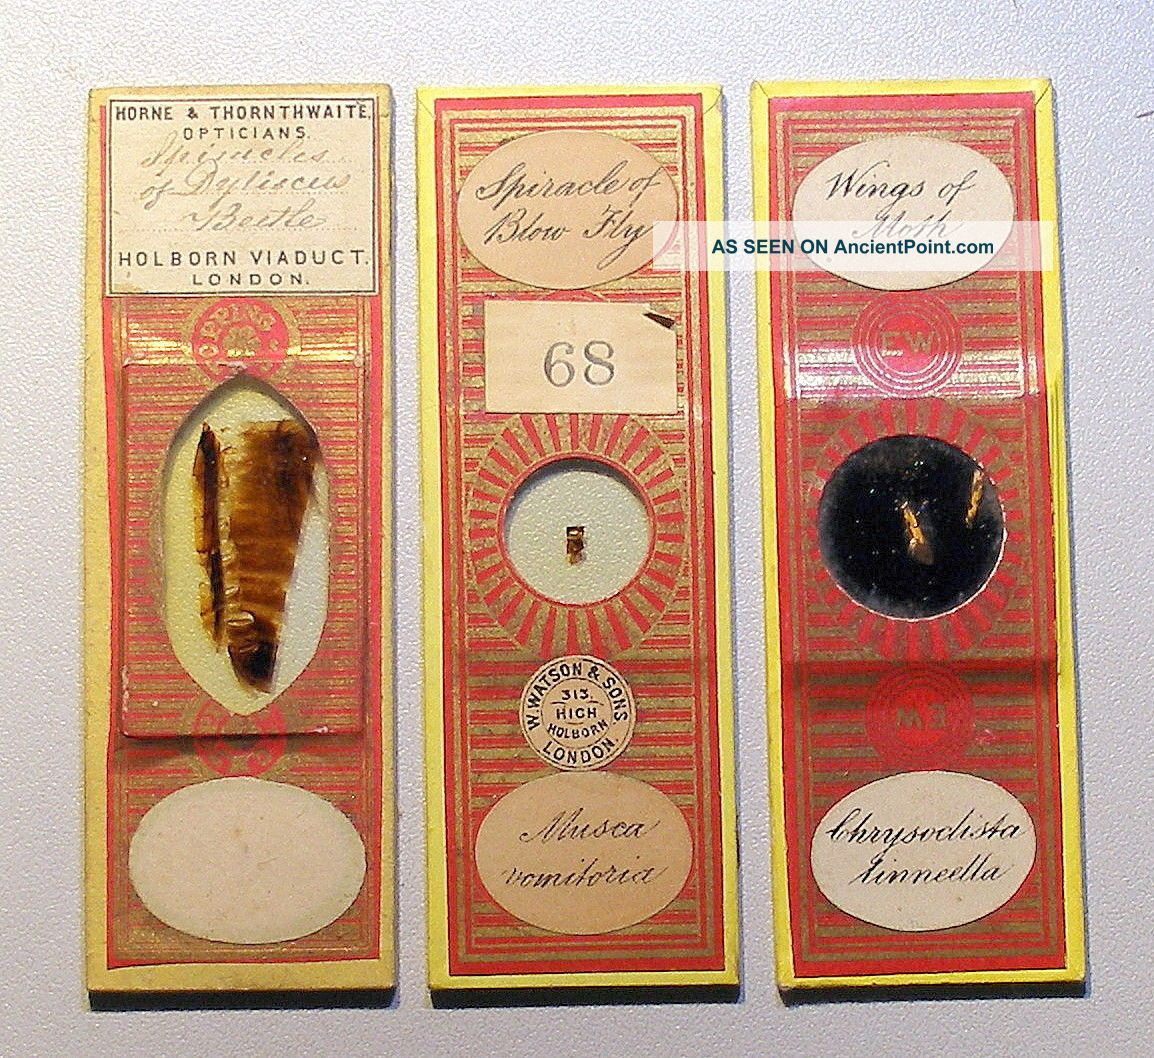 3 X Insect Part Microscope Slides,  By Watson,  Wheeler & Topping Other Antique Science Equip photo